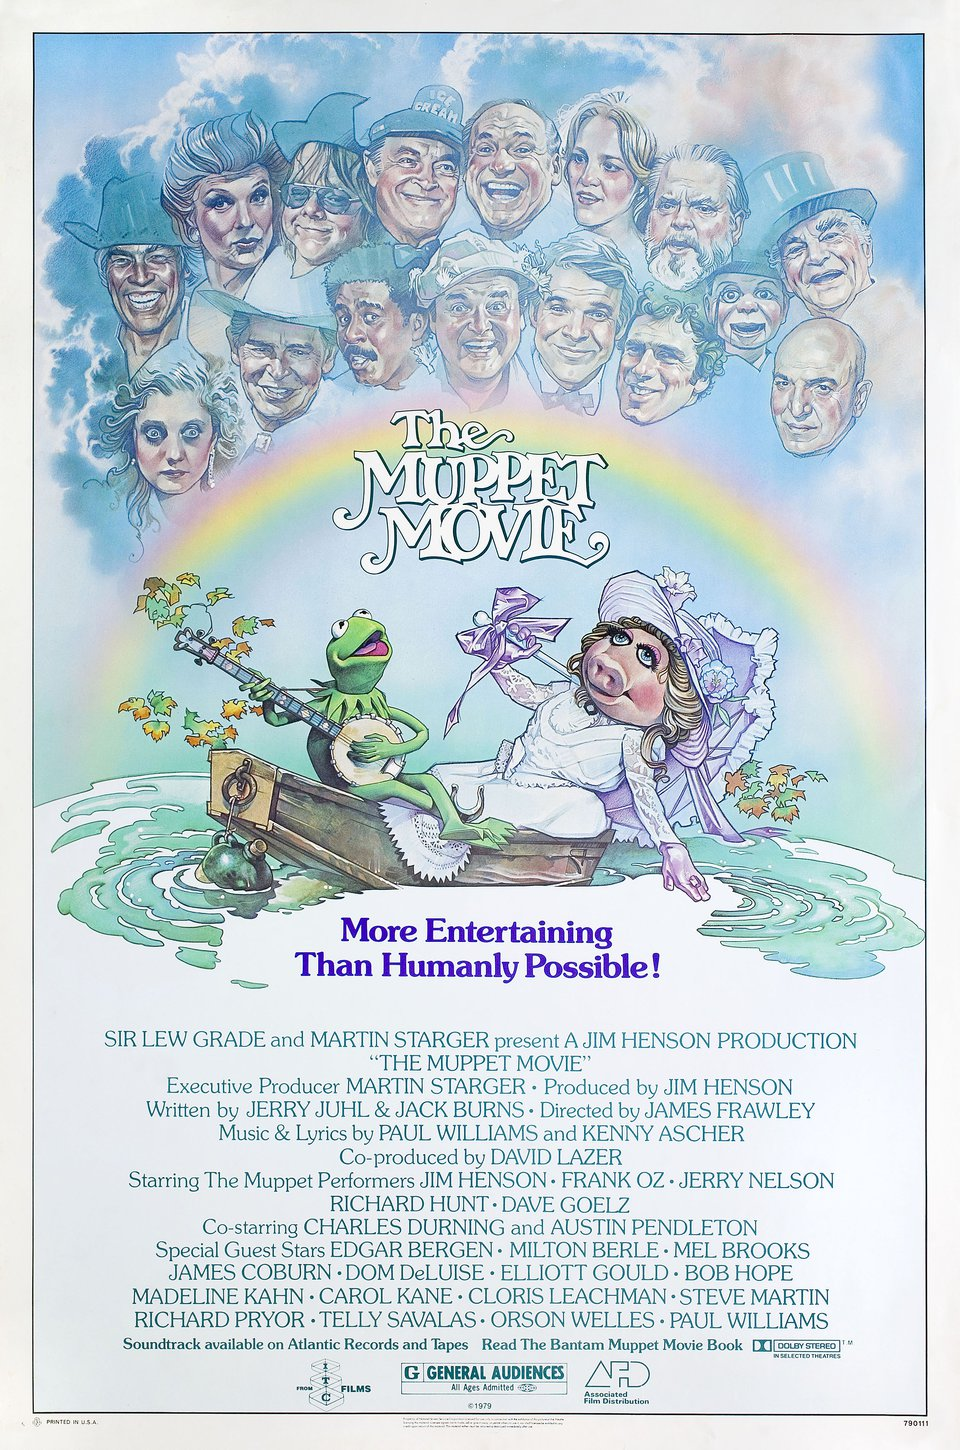 The Muppet Movie 1979 U.S. One Sheet Poster